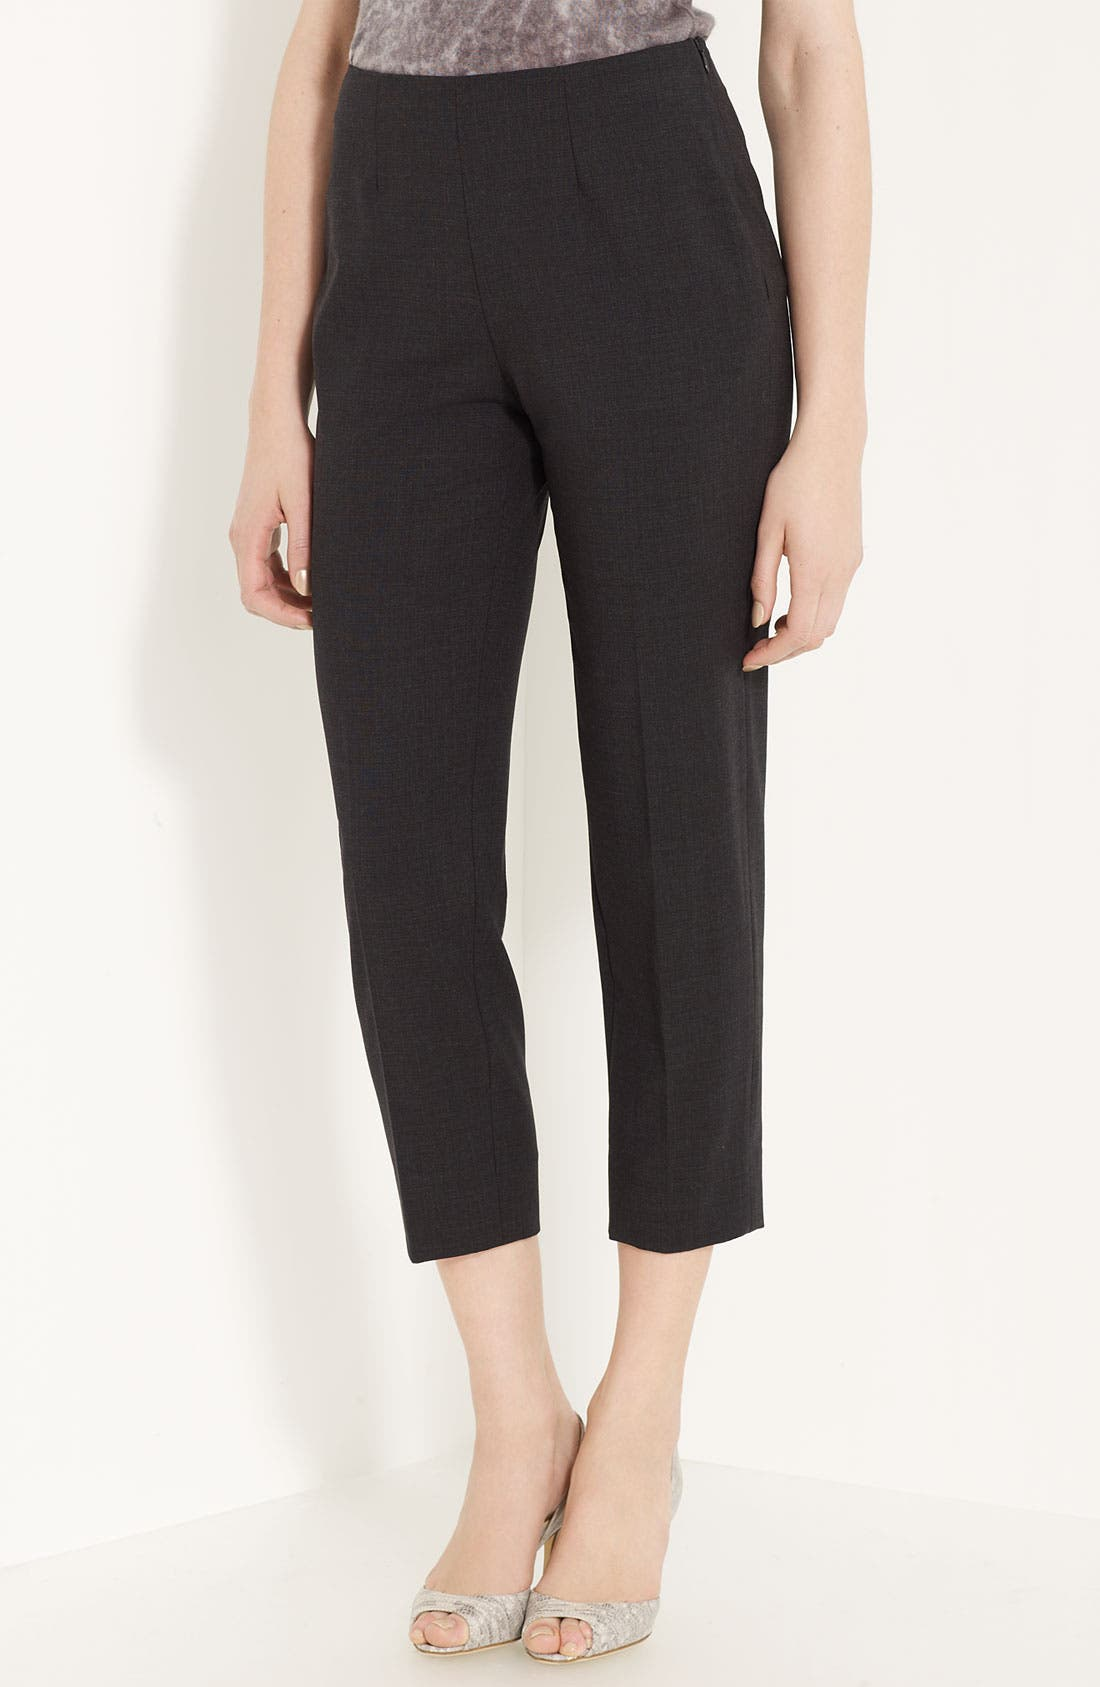 Alternate Image 1 Selected - Piazza Sempione 'Audrey' Stretch Tropical Wool Pants